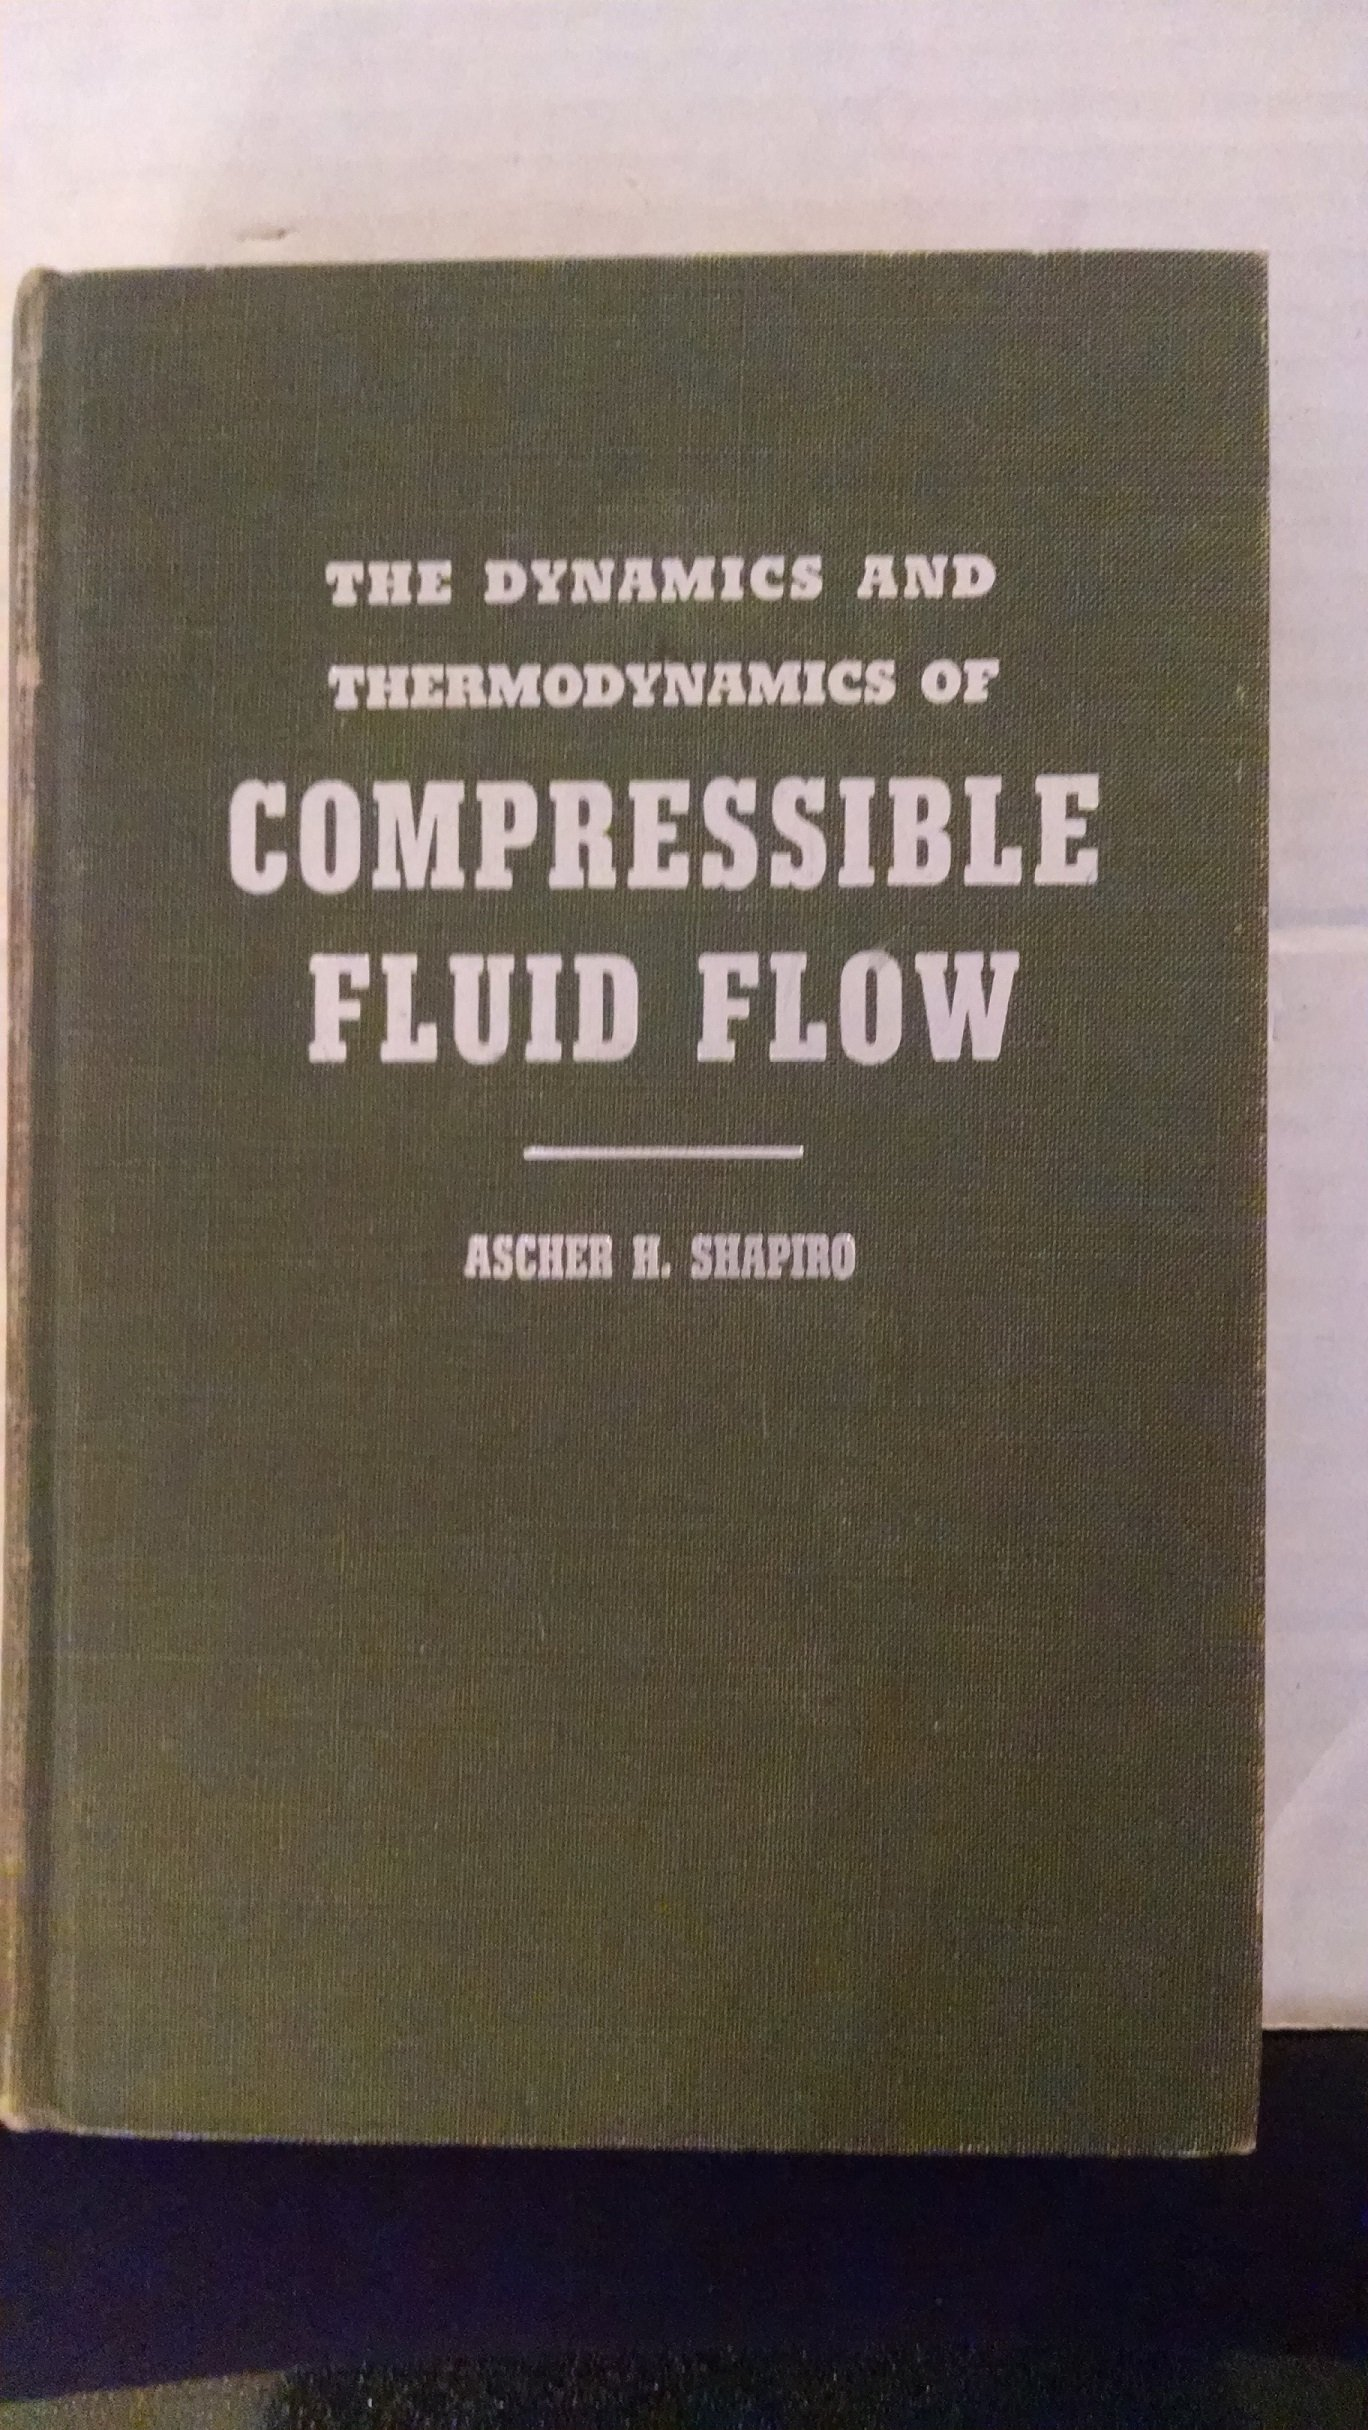 The Dynamics and Thermodynamics of Compressible Fluid Flow 2 Vols, Ascher H. Shapiro